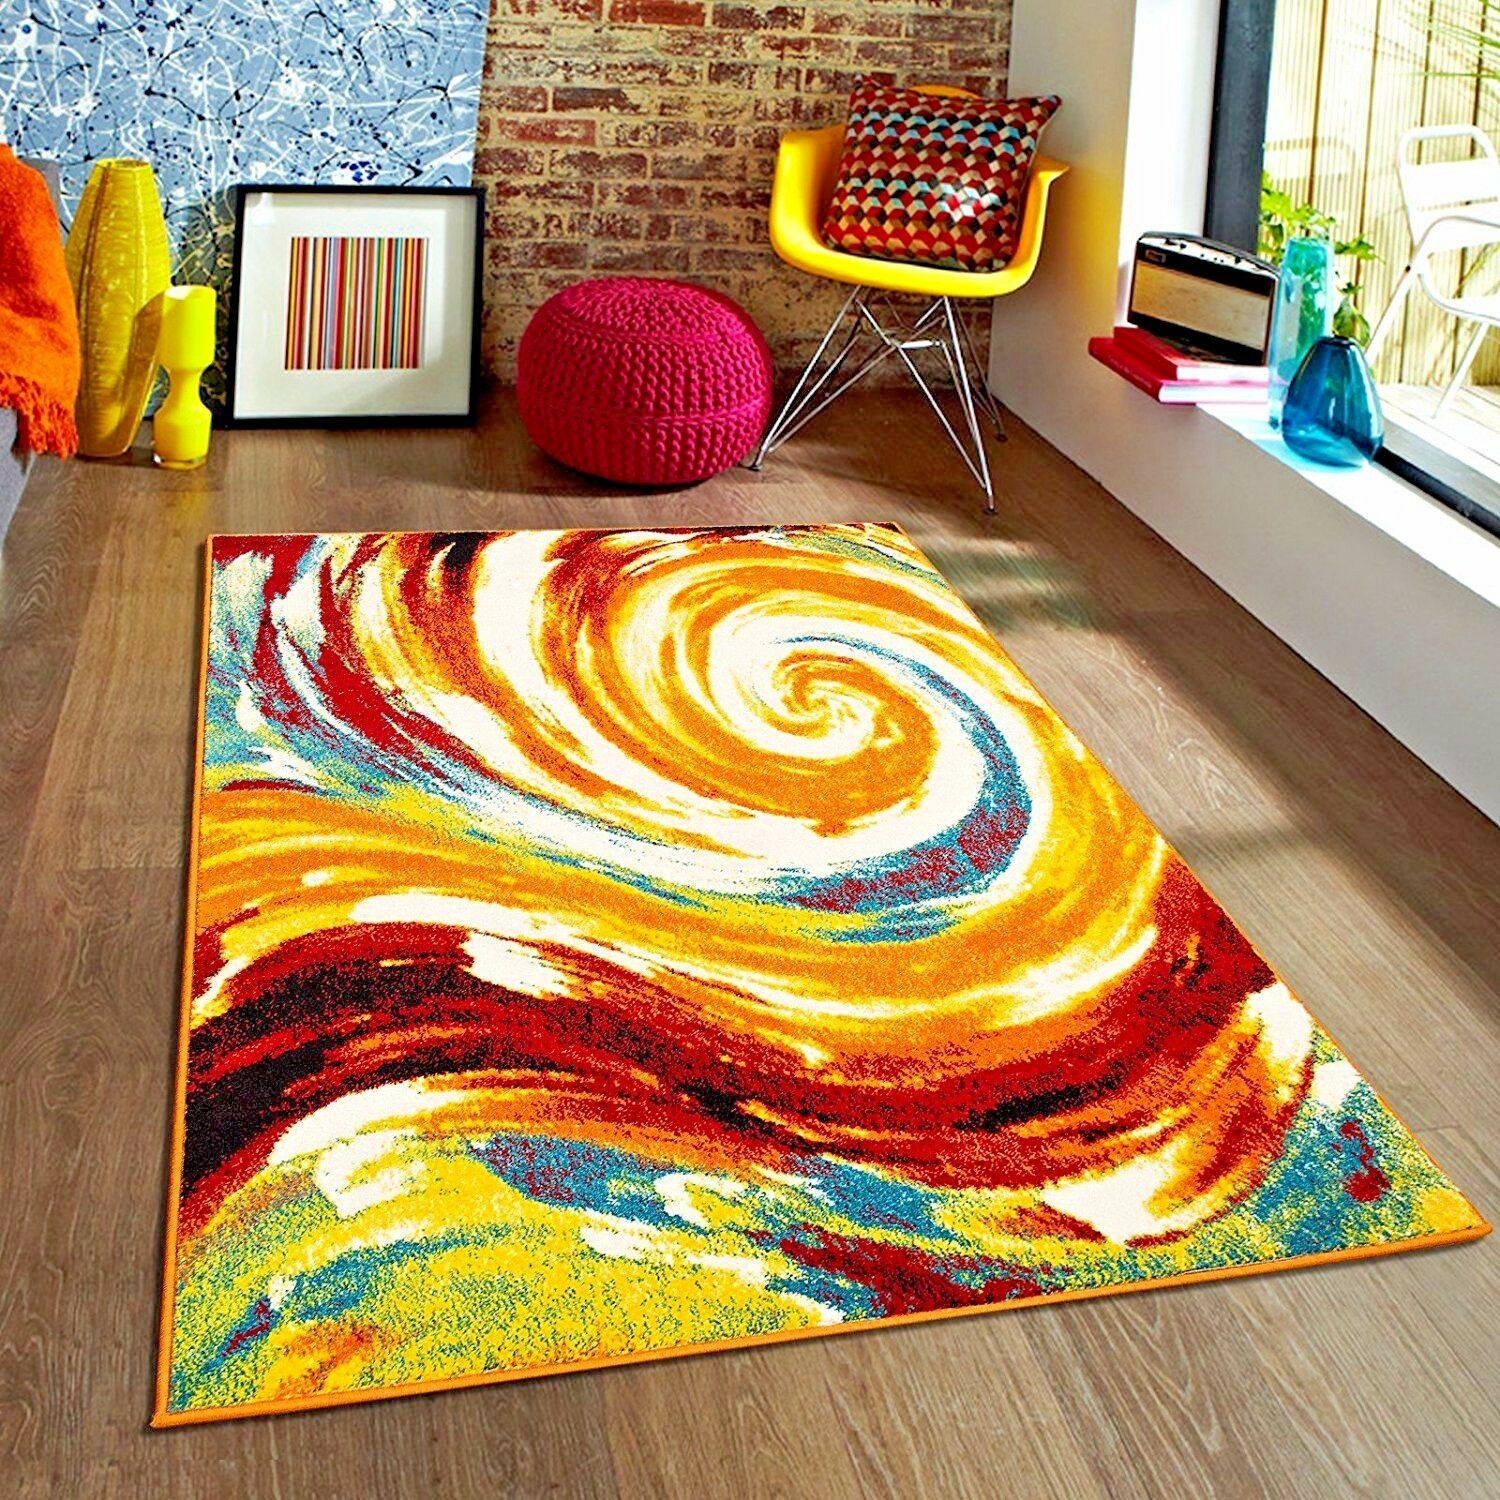 Rugs Area Rugs 8x10 Rug Carpets Modern Large Floor Plush Big